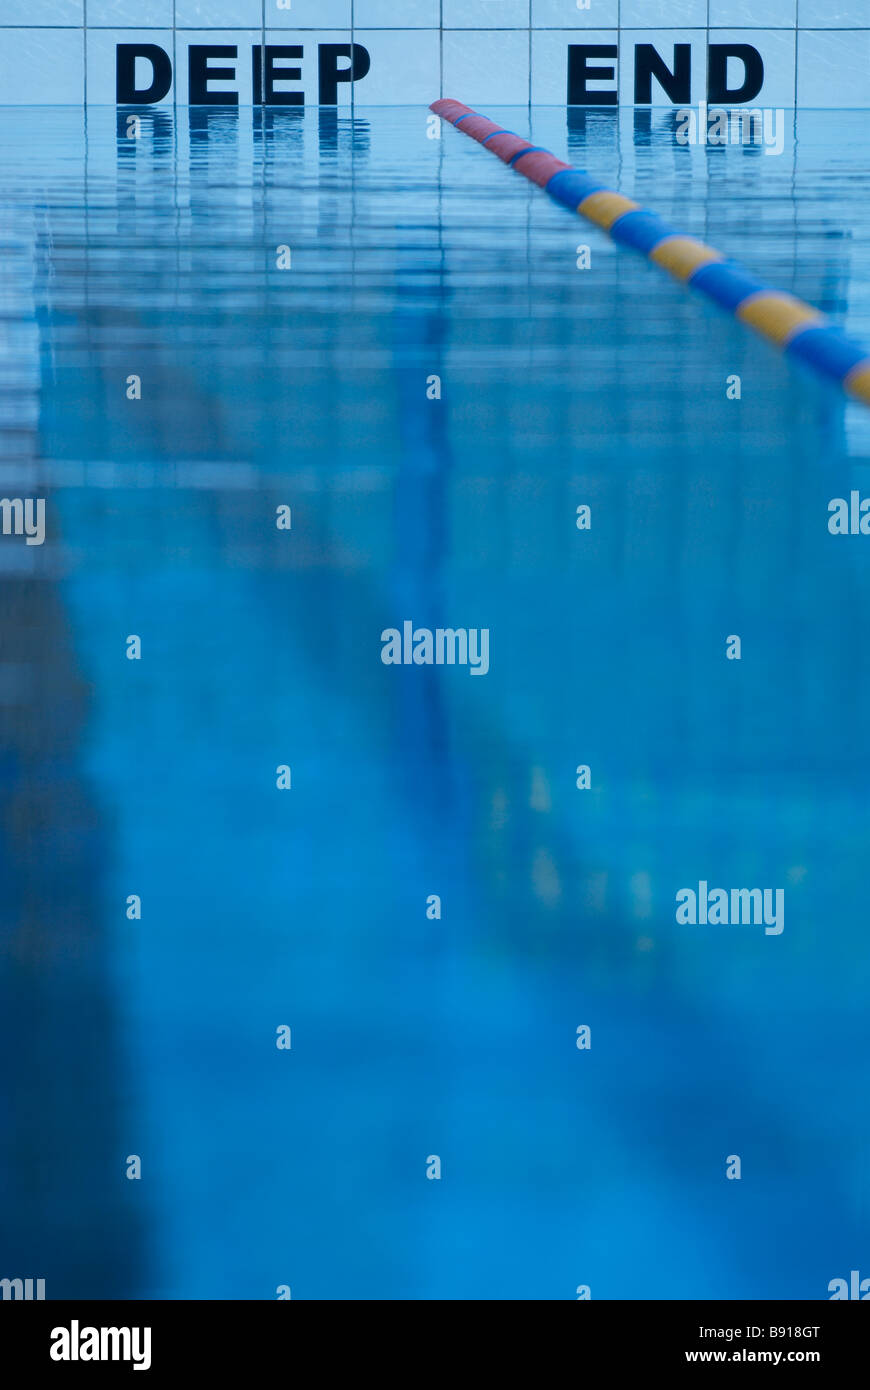 Deep End Of Swimming Pool Stock Photo Royalty Free Image 22770968 Alamy